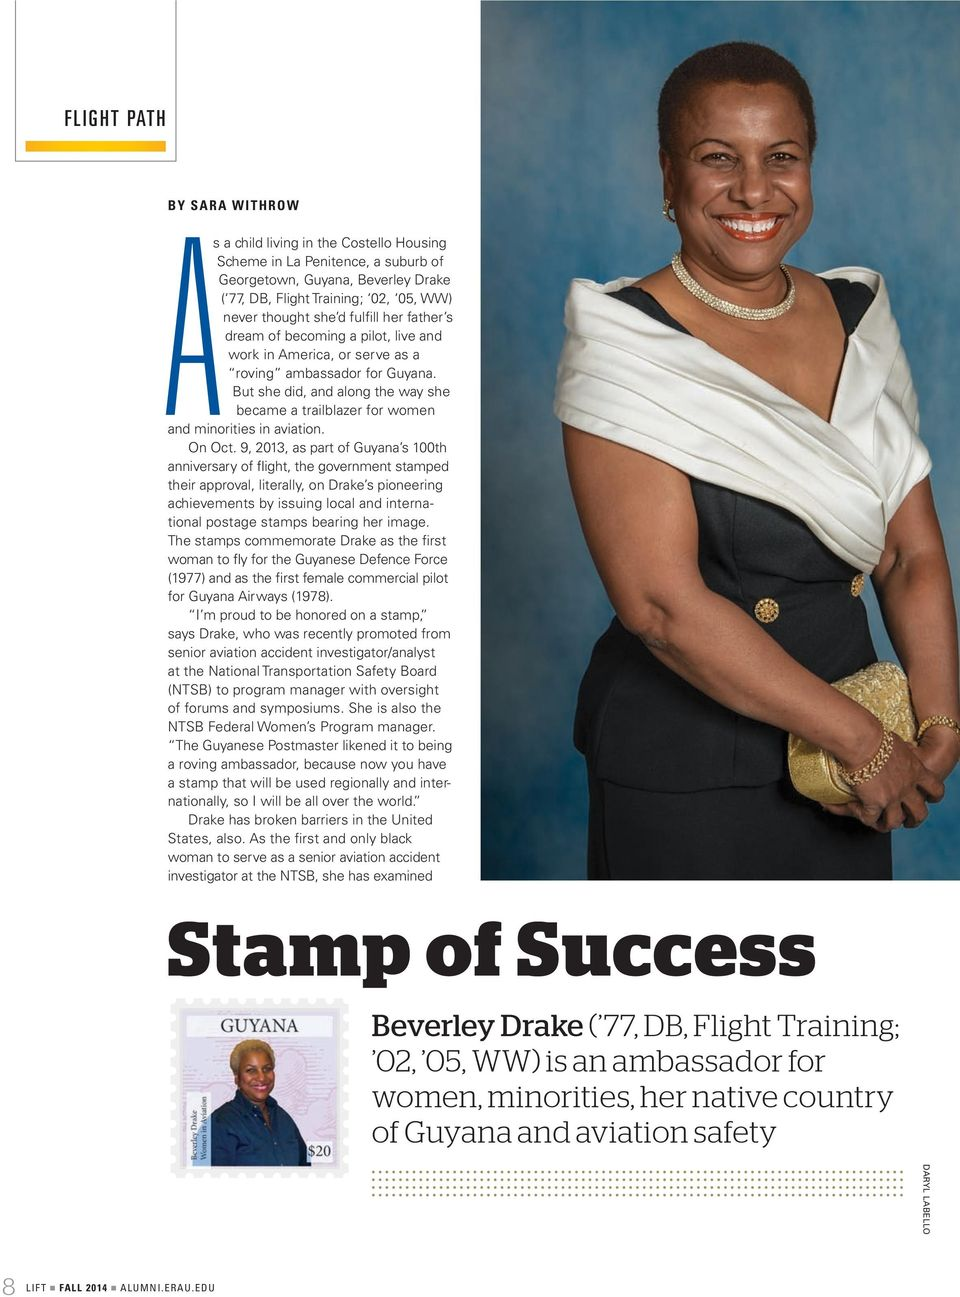 But she did, and along the way she became a trailblazer for women and minorities in aviation. On Oct.